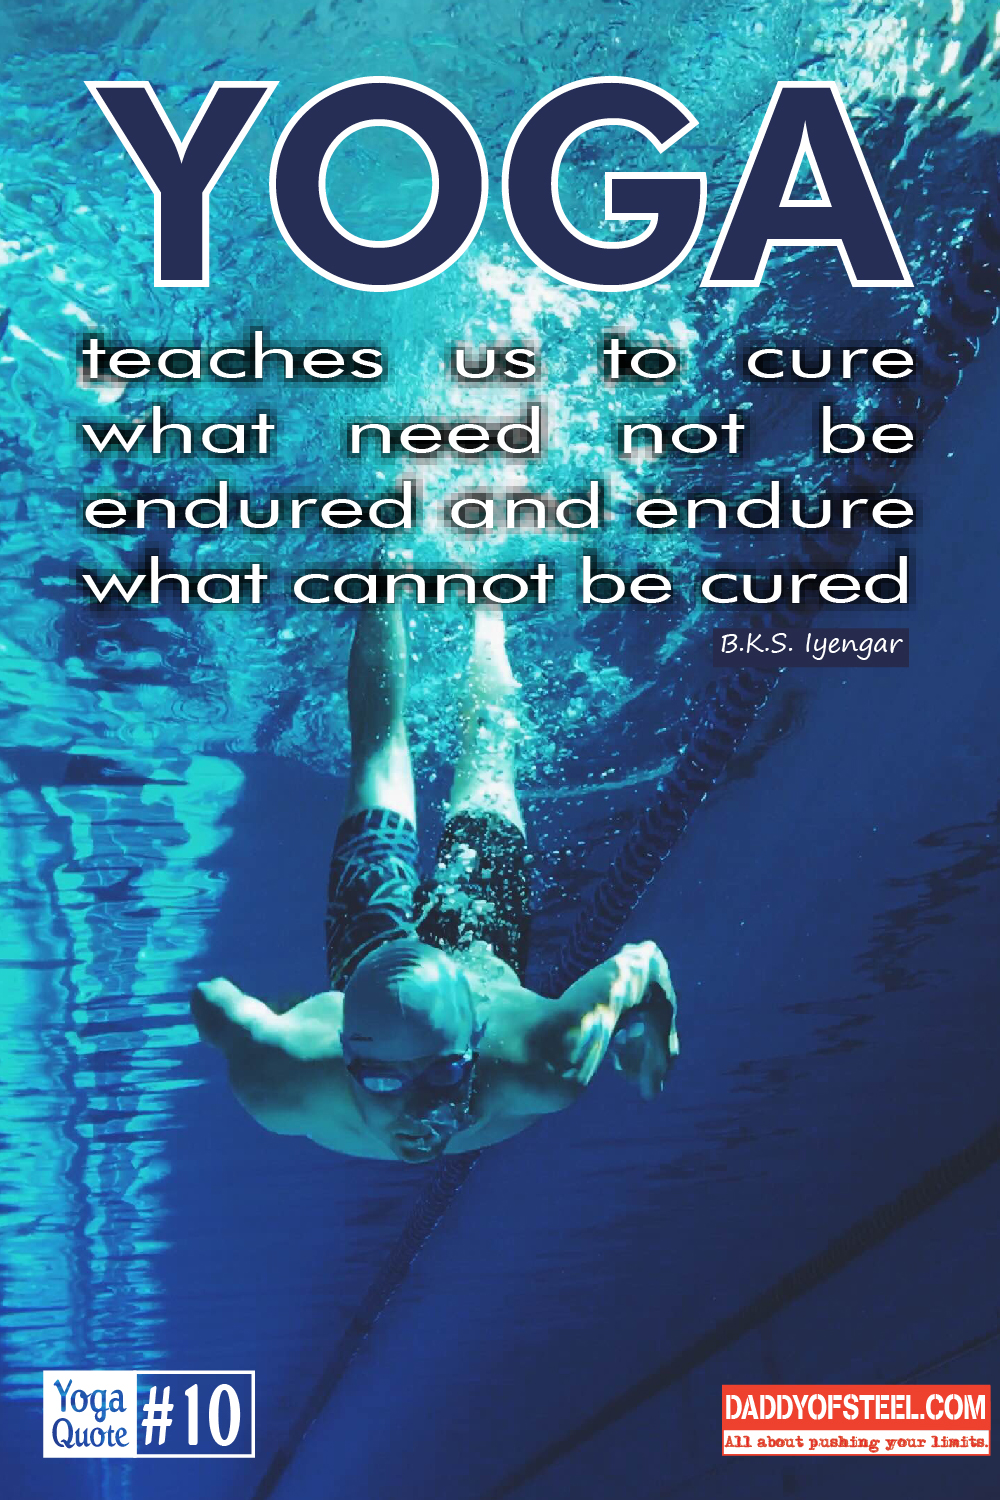 Yoga Quote 10 Teaches Us To Cure What Need Not Be Endured And Endure Cannot Cured BKS Iyengar